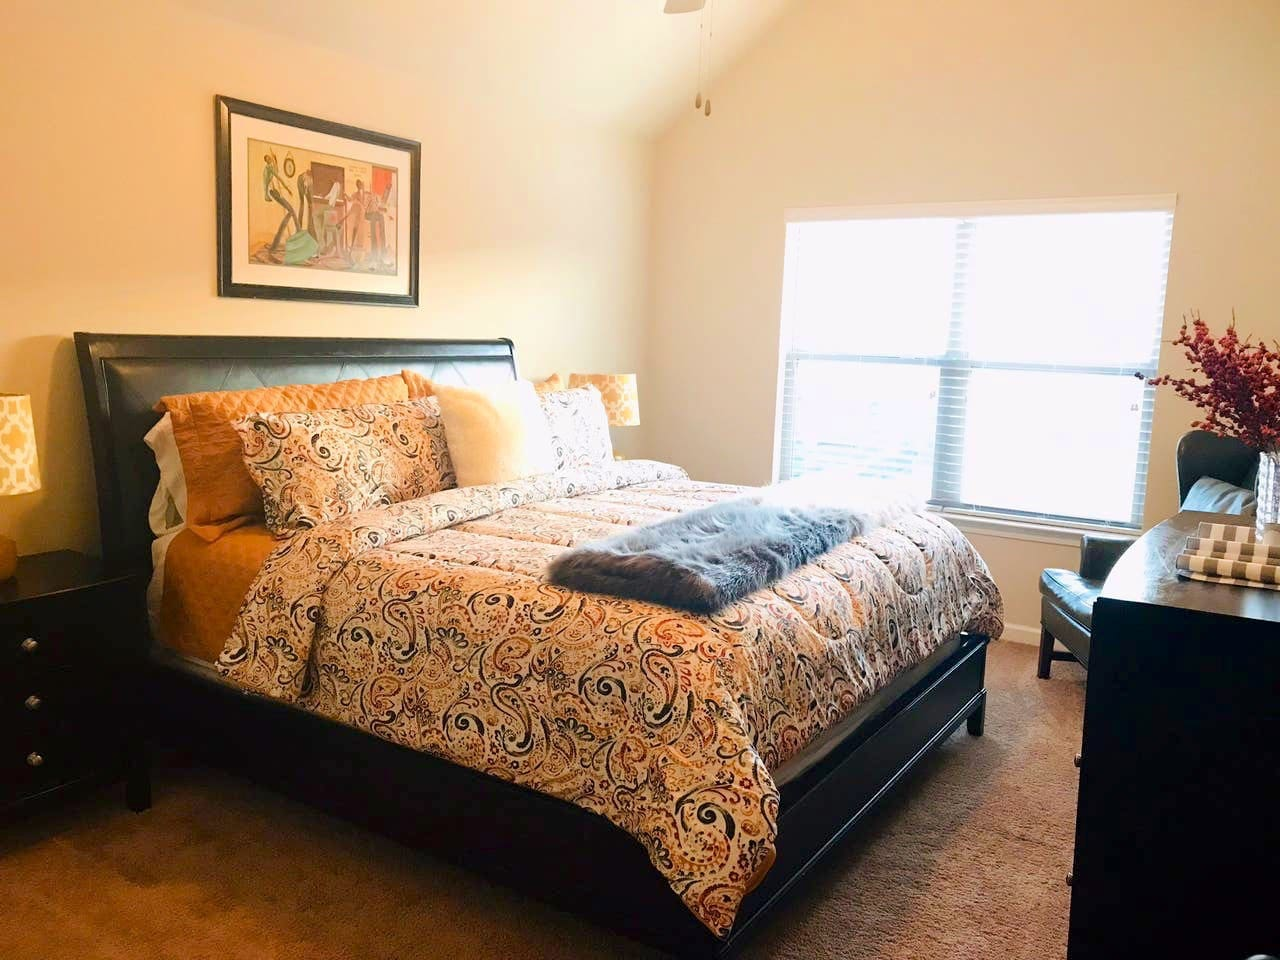 A comfy king-sized bed, 2 night stands, 6-drawer dresser, and closet awaits you!